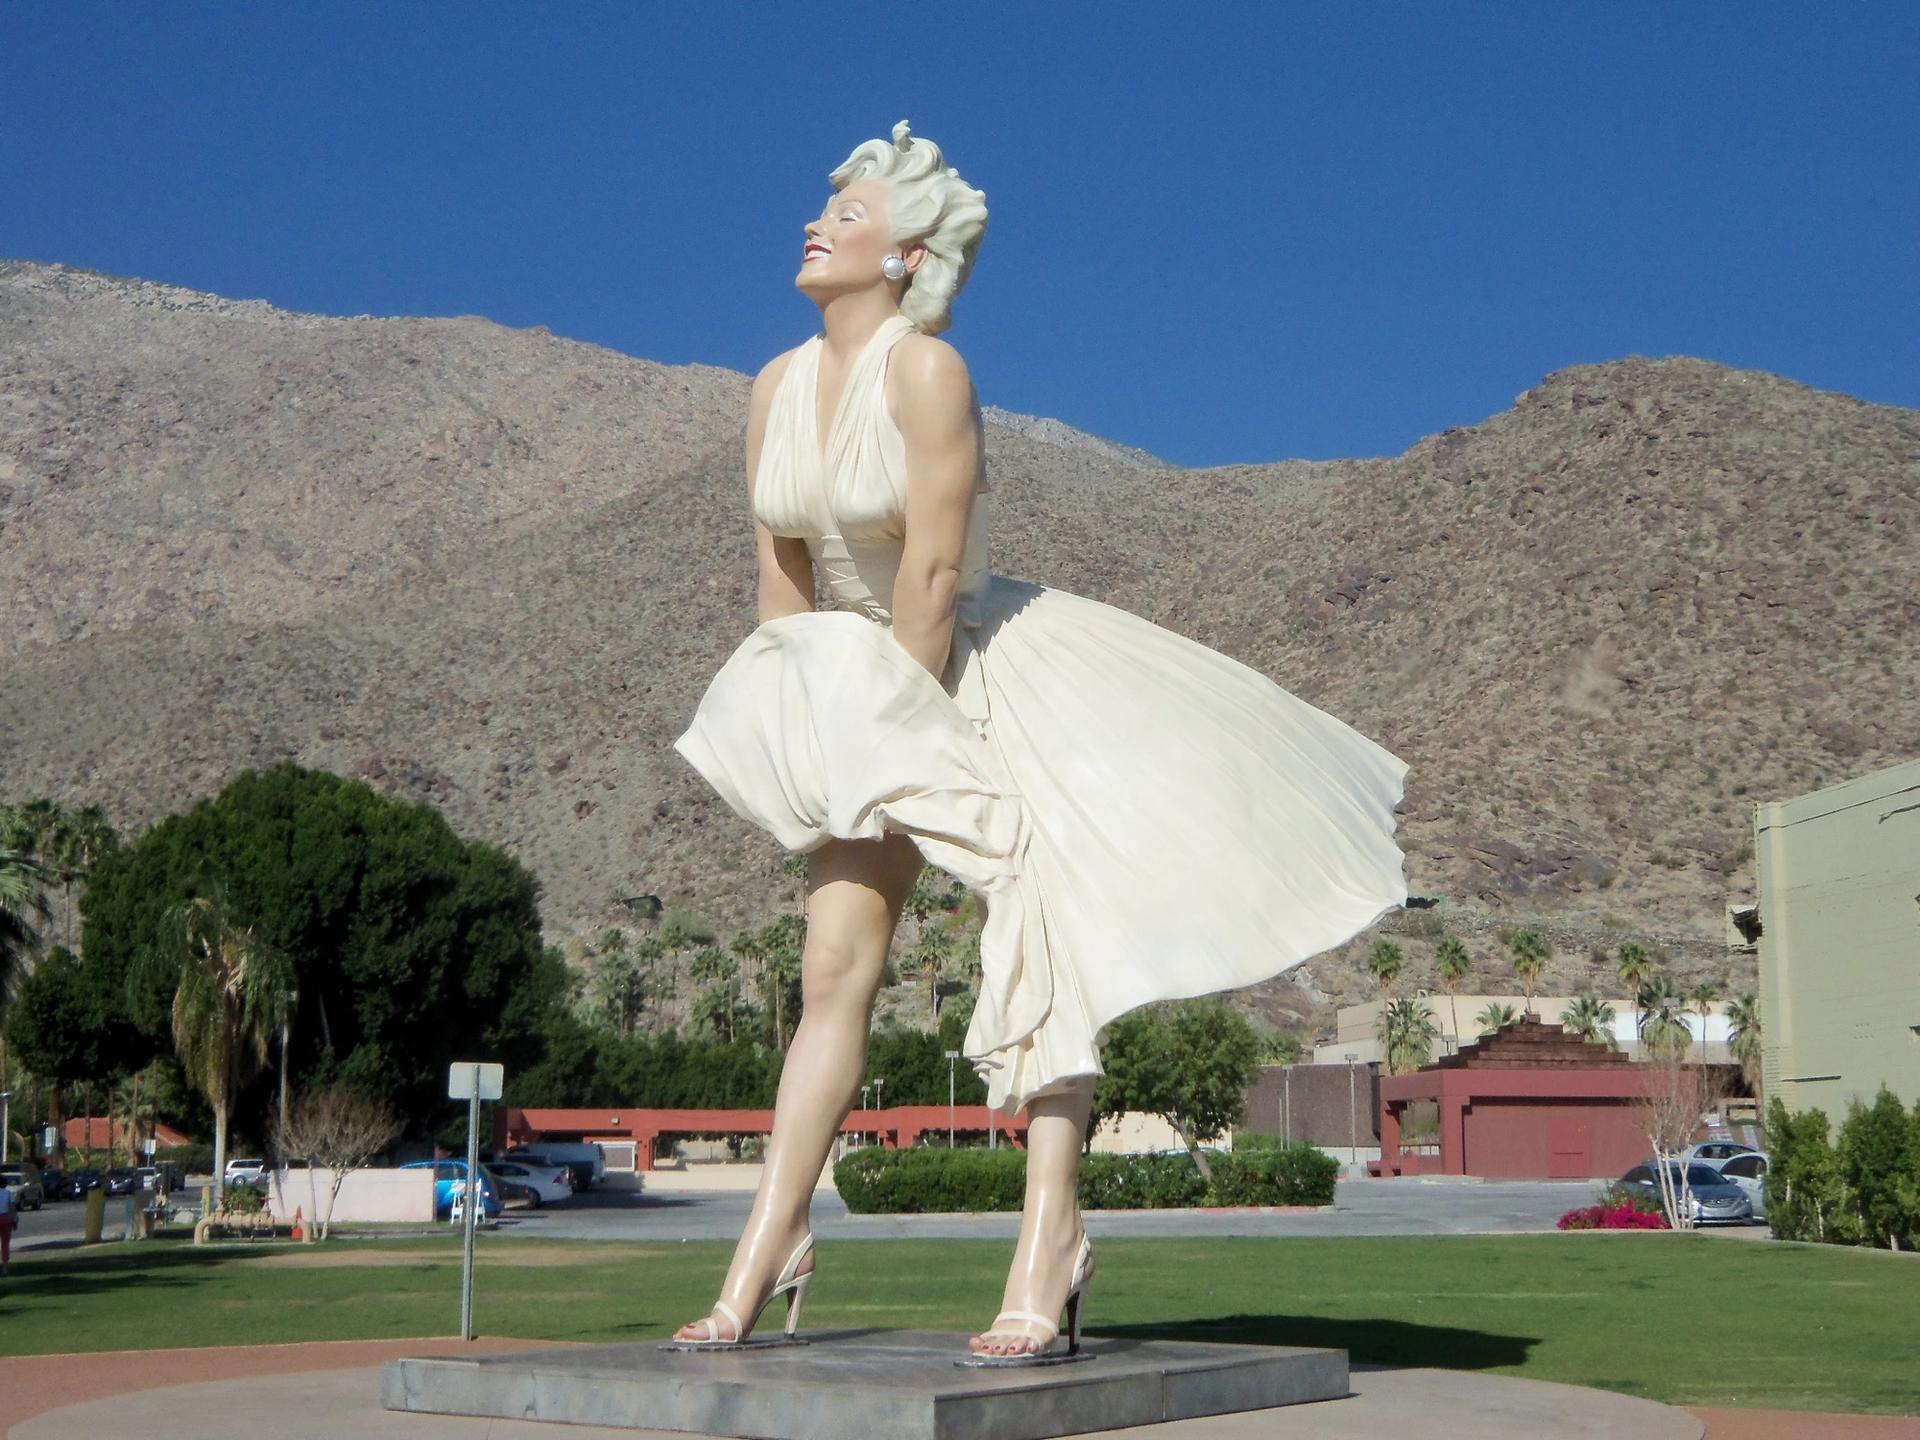 When it was first installed in the California desert town, from 2012 to 2014, Forever Marilyn was a popular tourist attraction, with many visitors posing for photographs between the statue's feet Photo: Fred Miller